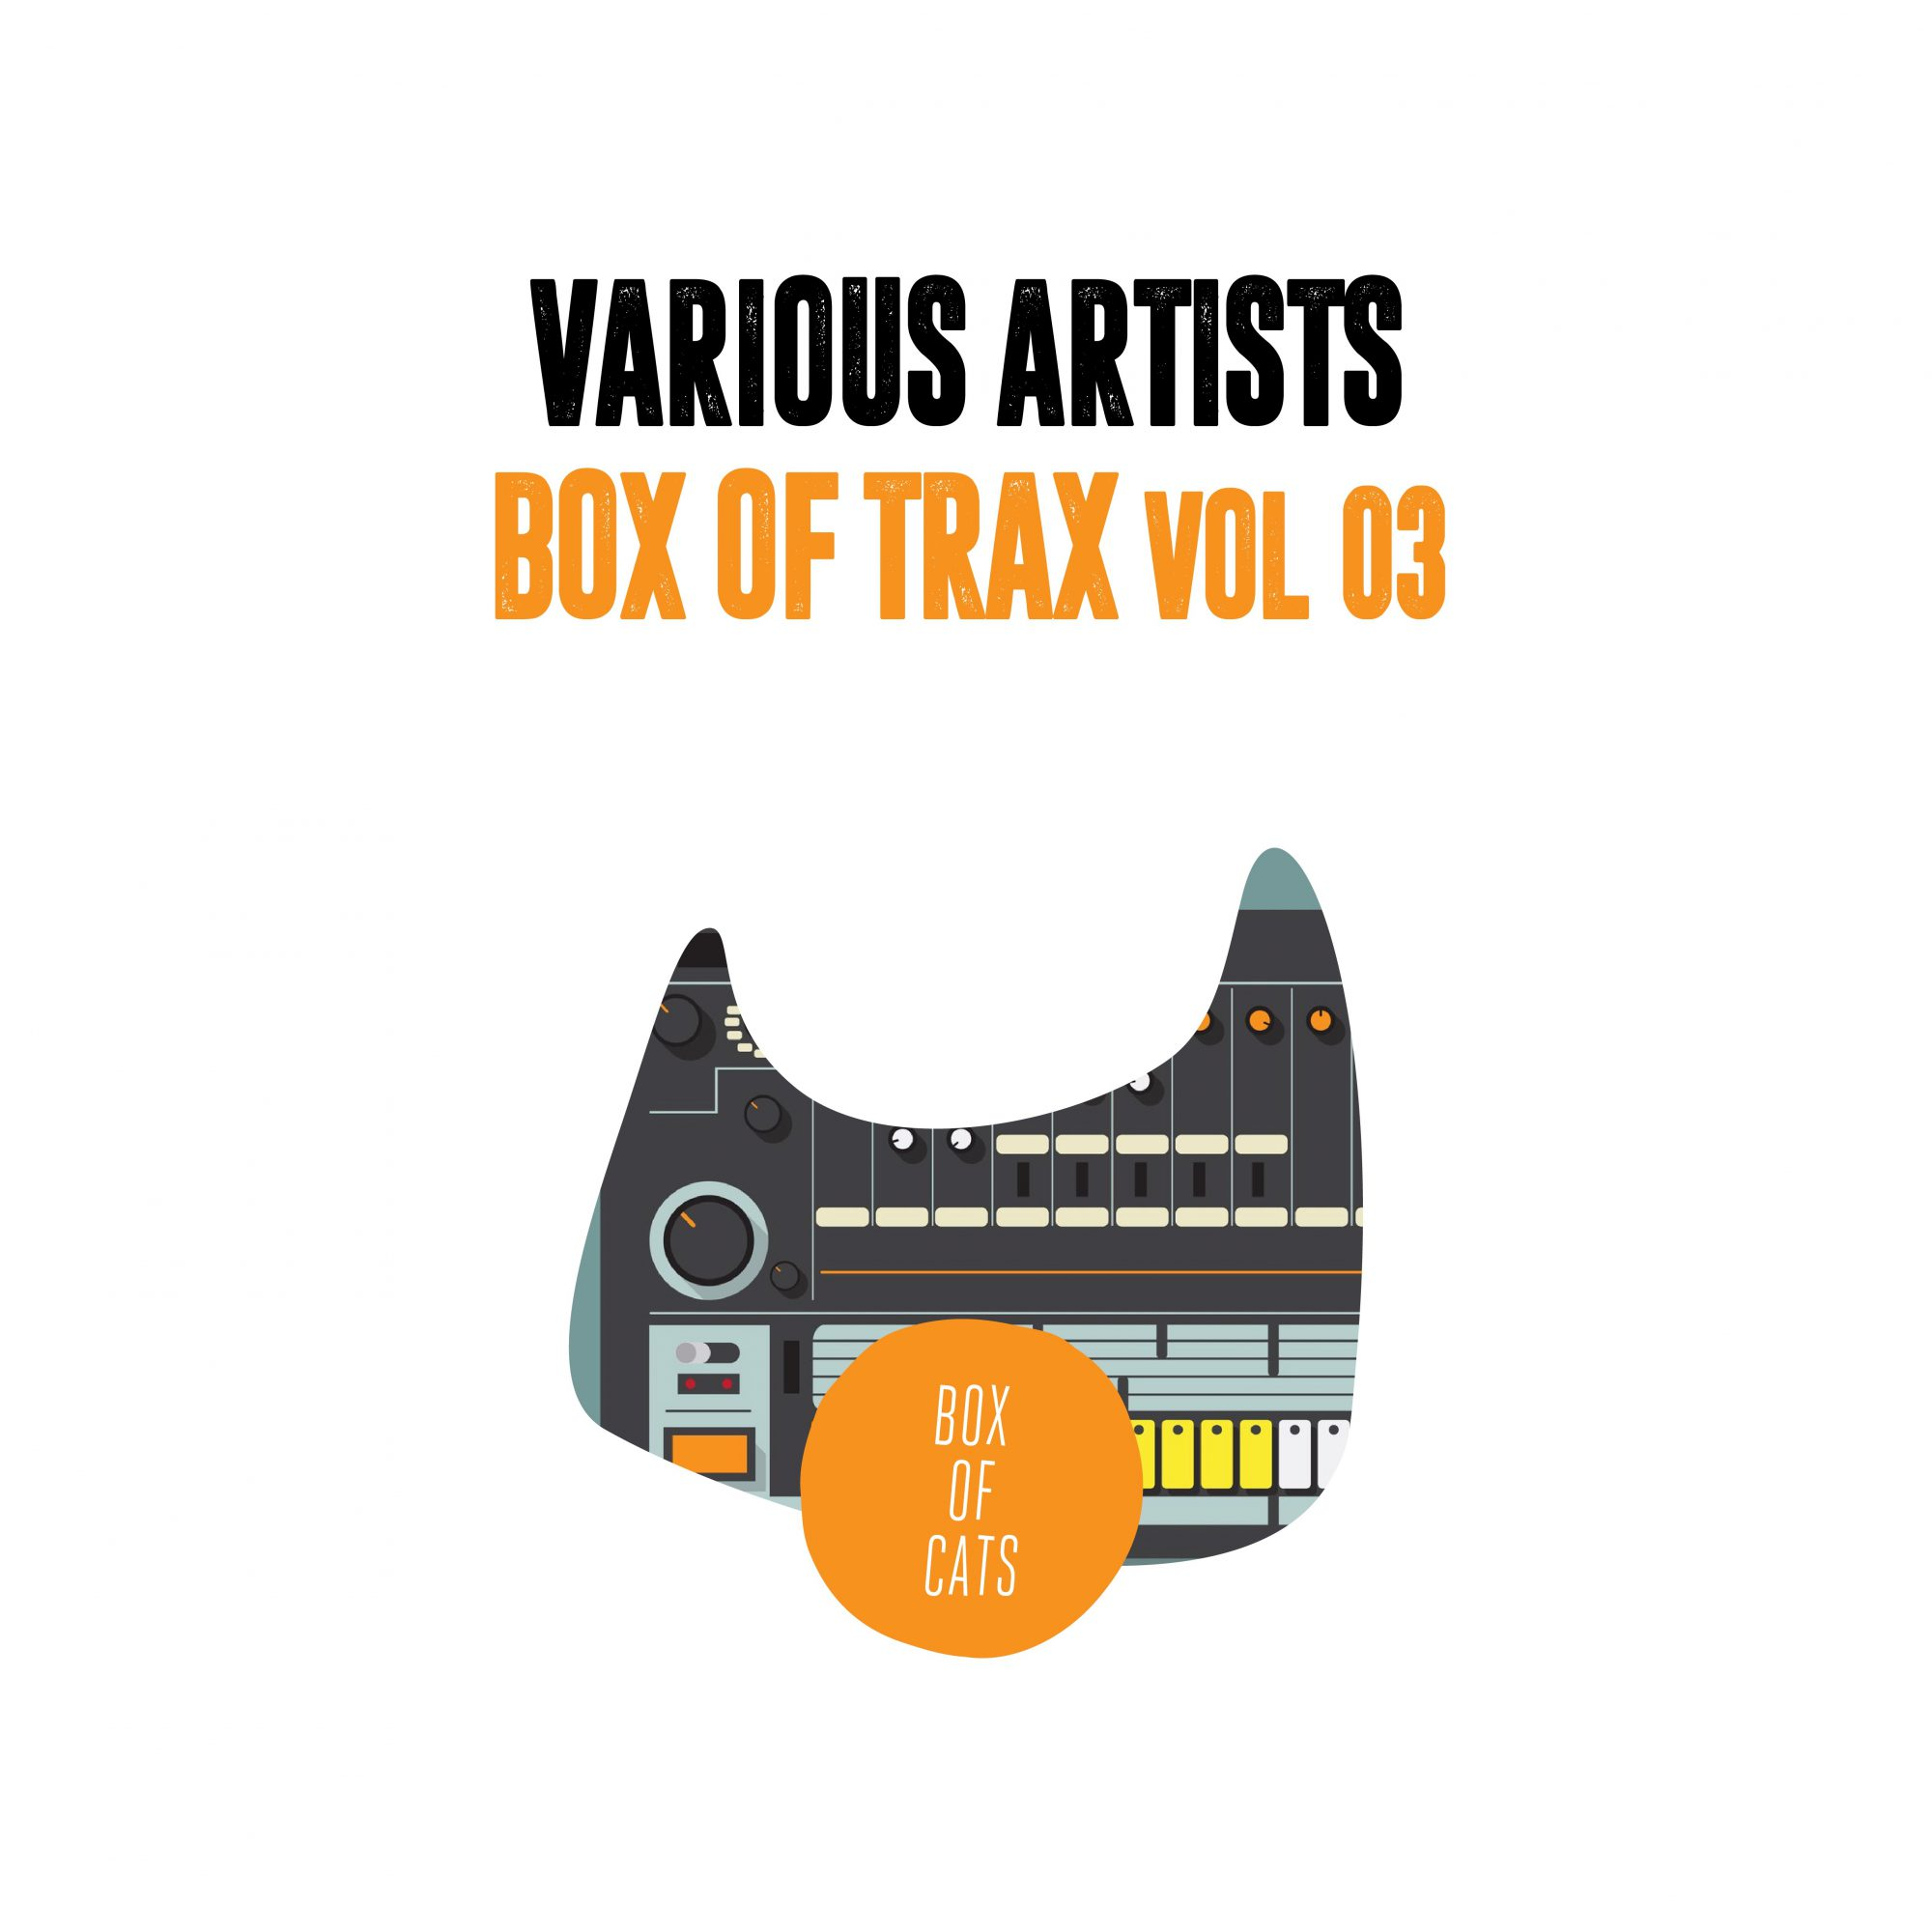 Box of Trax Vol. 3